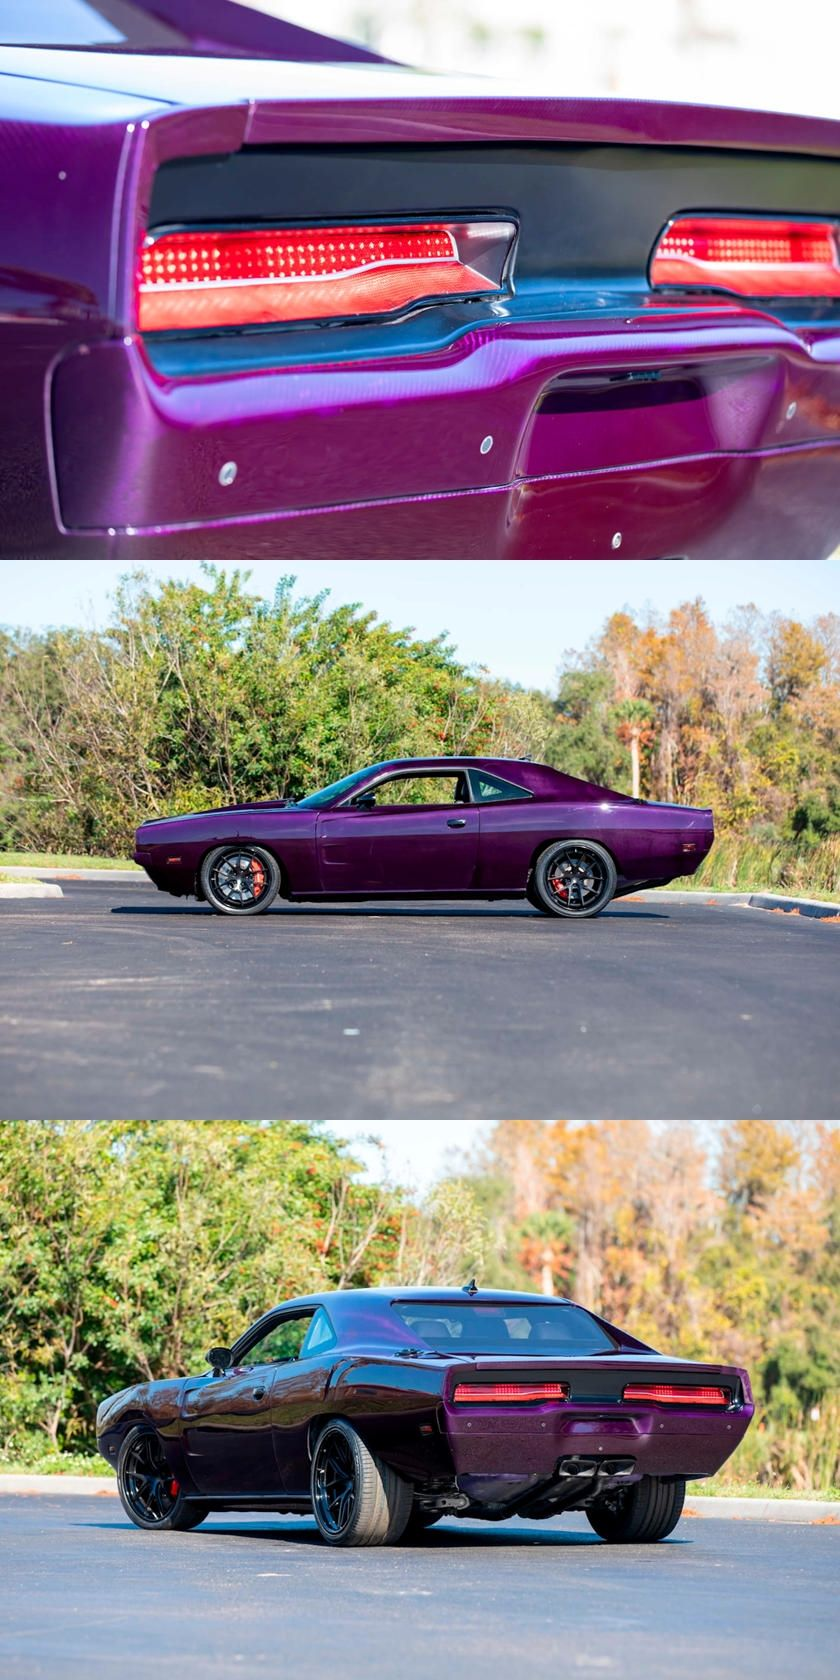 Only Ten Of These Throwback Muscle Cars Will Be Made This Special Project Blends Retro Looks With A Modern Interior And In 2020 Modern Muscle Cars Muscle Cars Muscle